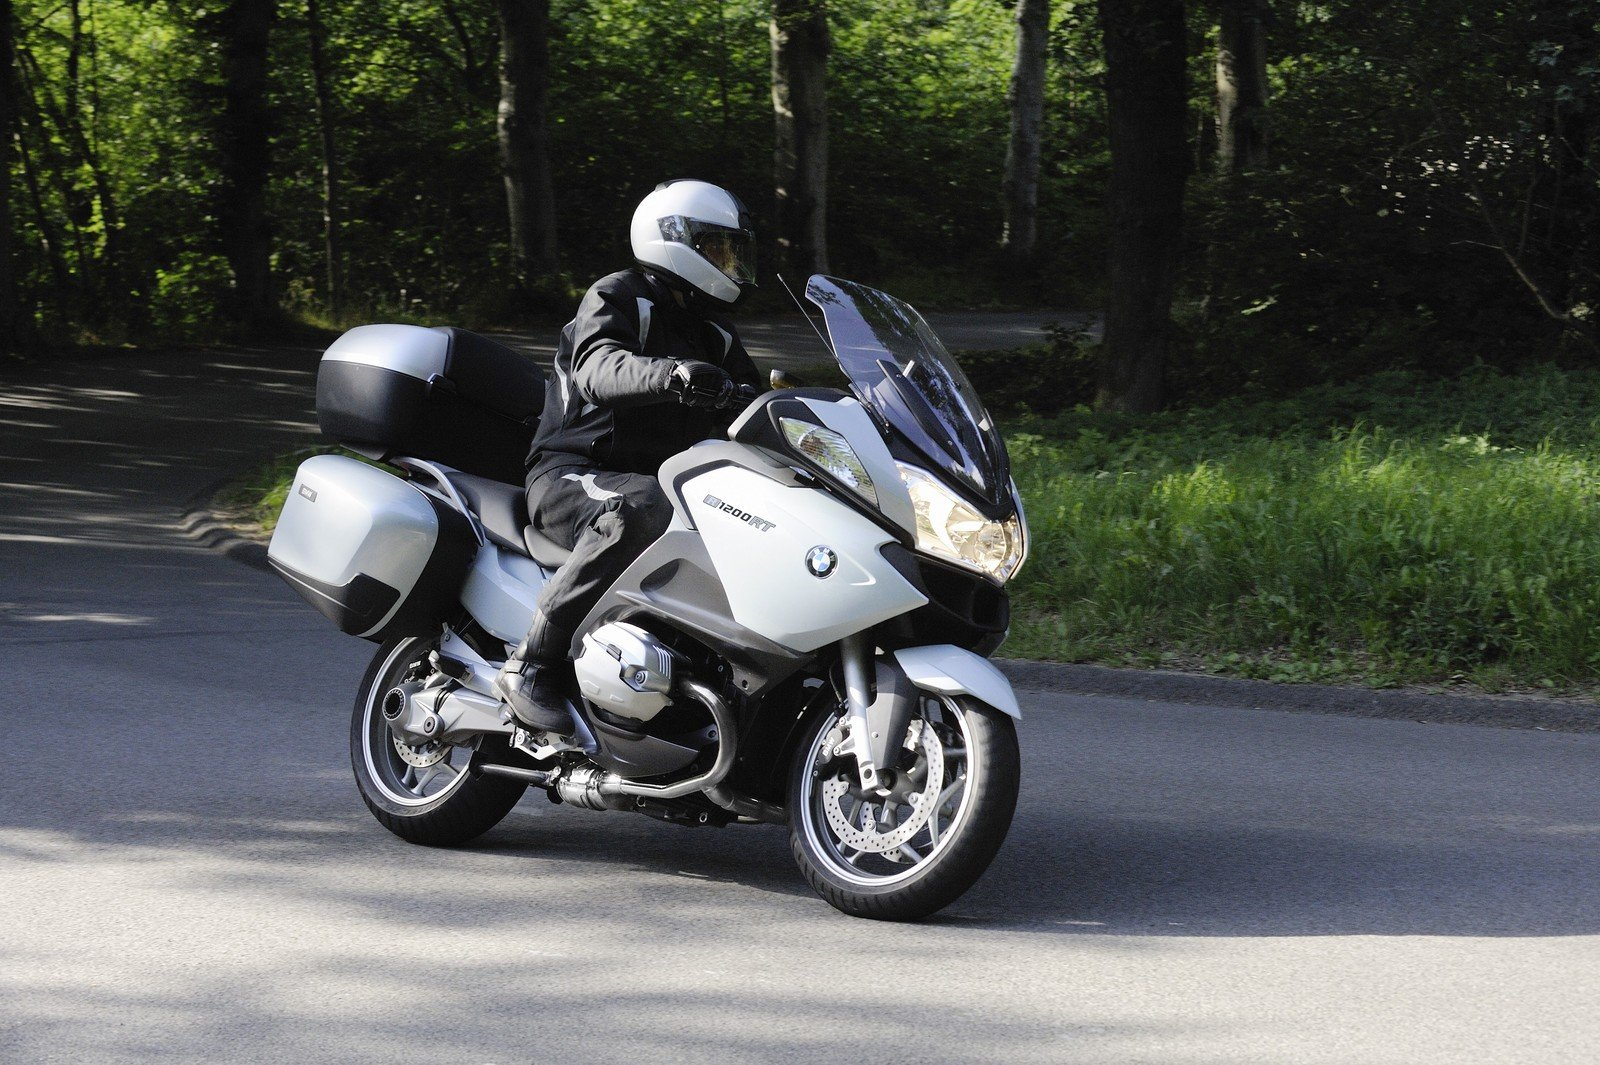 2010 bmw r 1200 rt picture 331517 motorcycle review. Black Bedroom Furniture Sets. Home Design Ideas